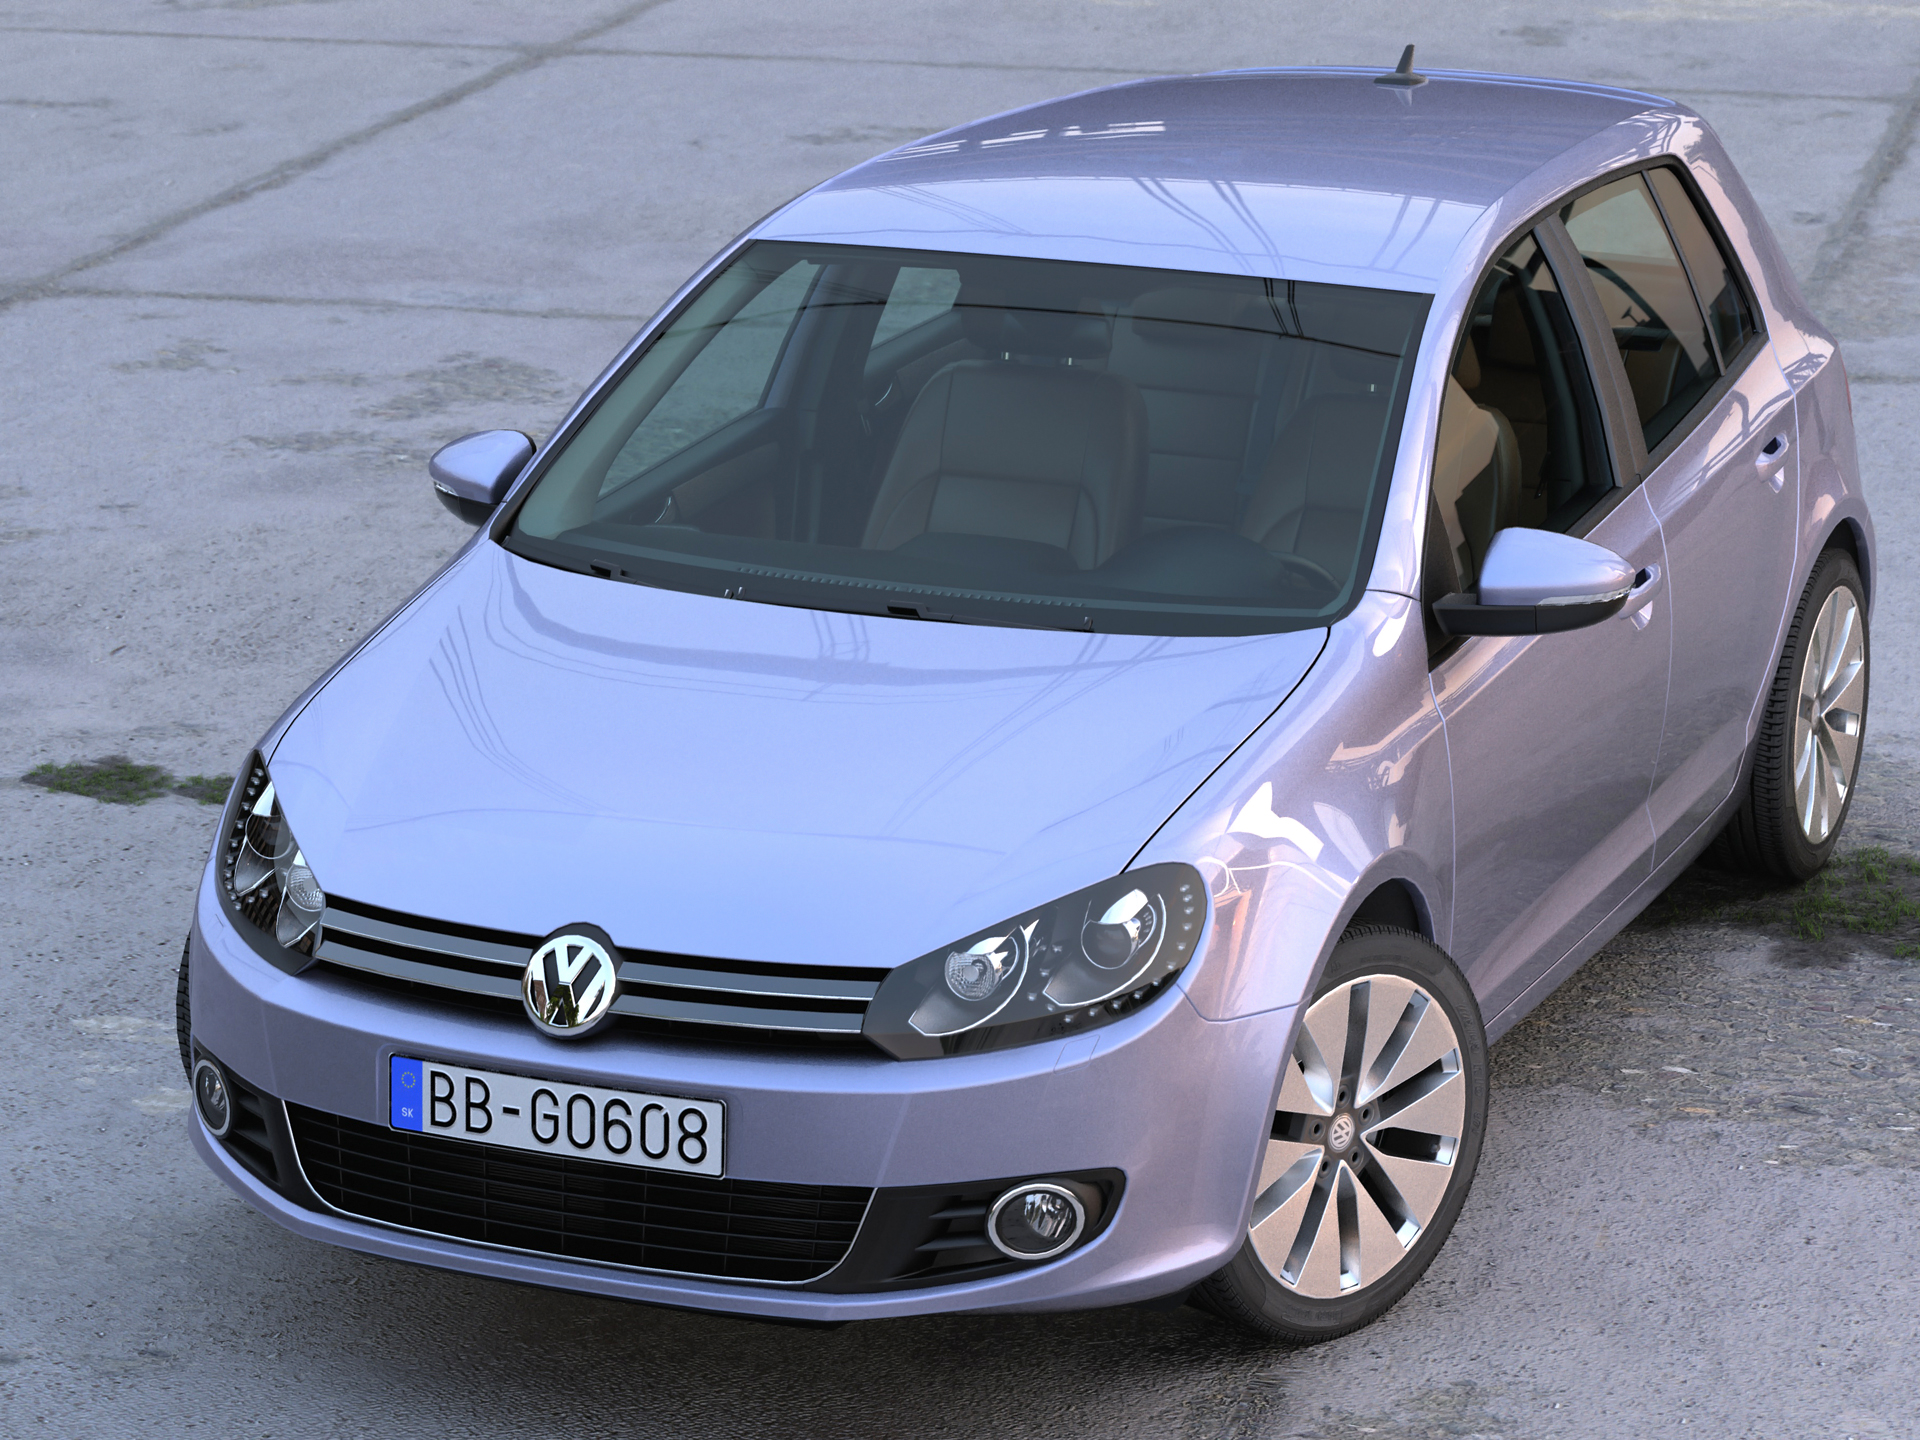 volkswagen golf 5d (2010) 3d model 3ds max fbx c4d obj 191596